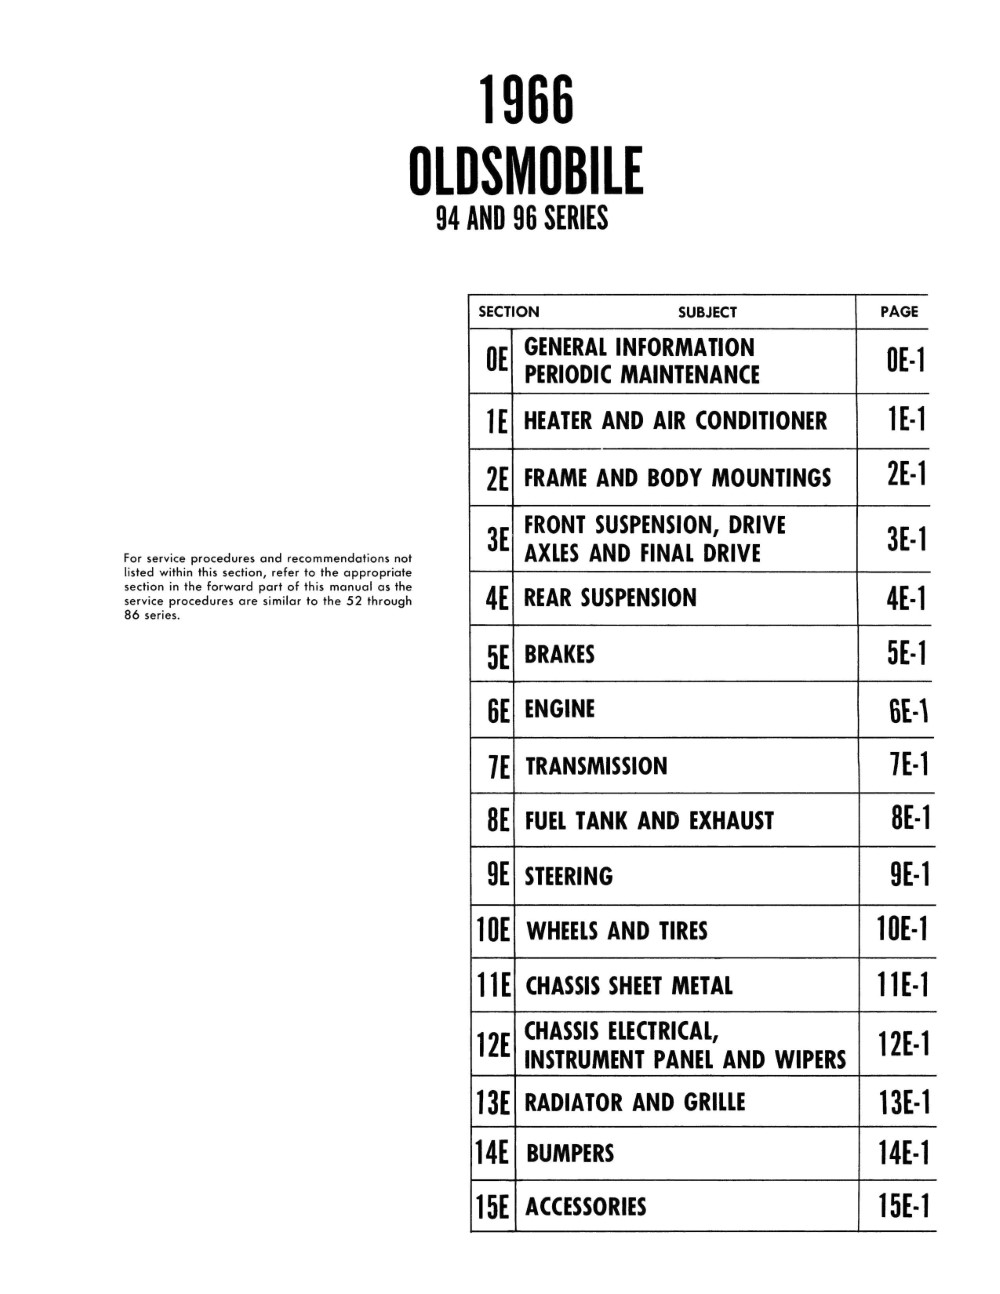 1966 Oldsmobile Chassis Service Manual (Licensed Reprint)